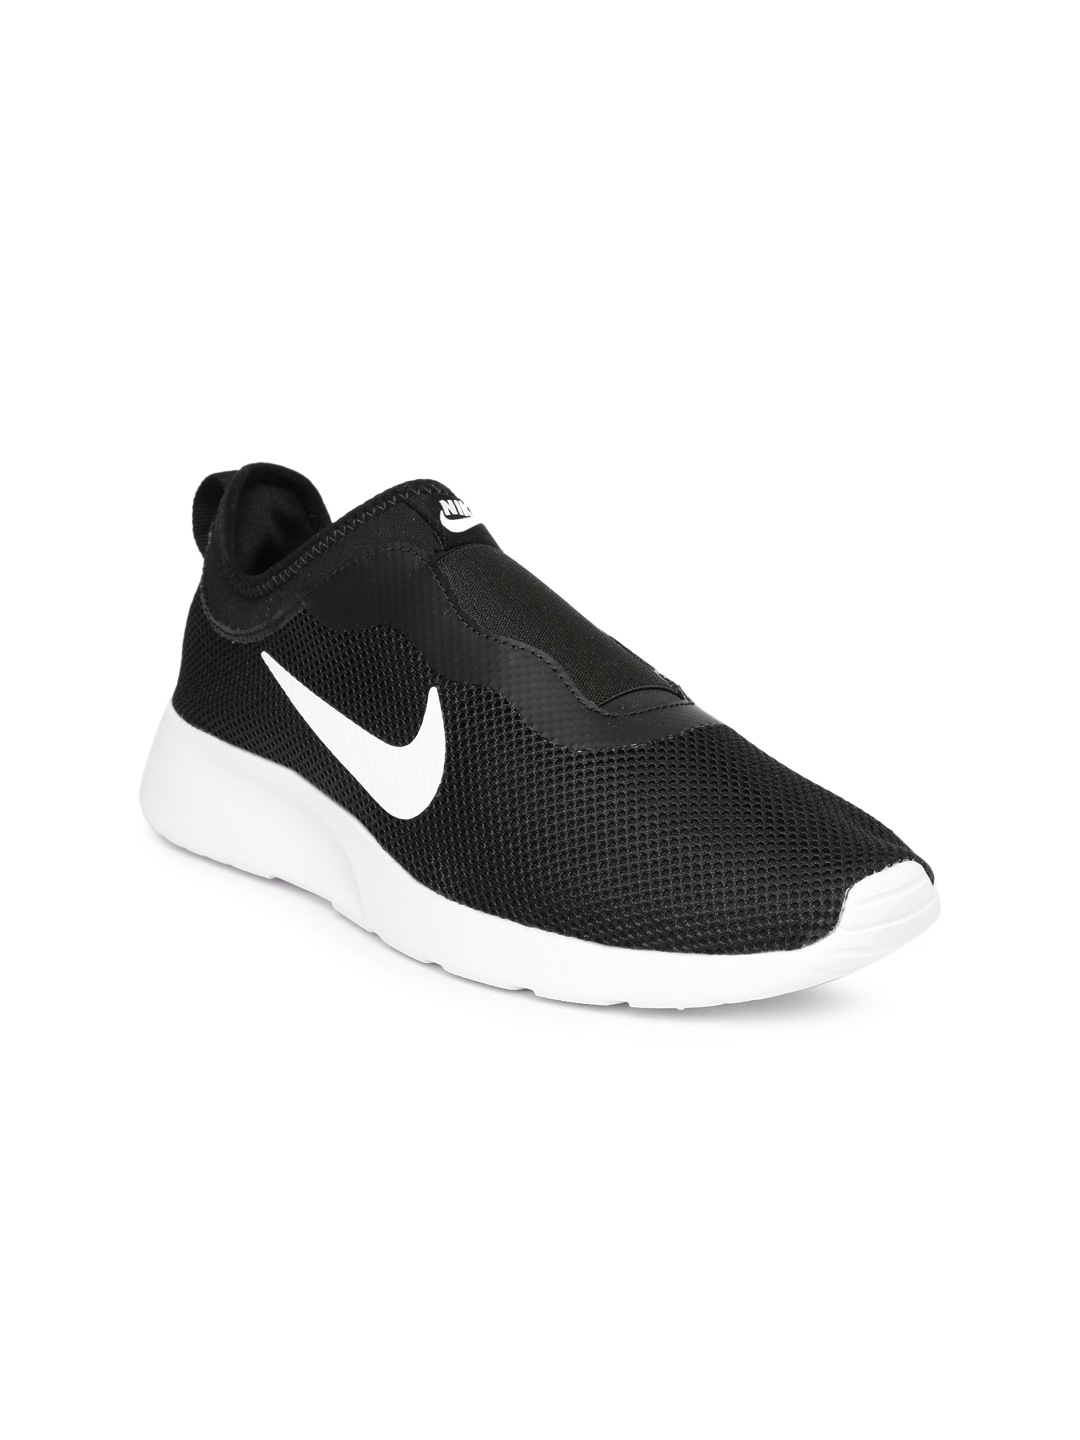 Tanjun Slip Black Women Sneakers Nike On 45j3LRA